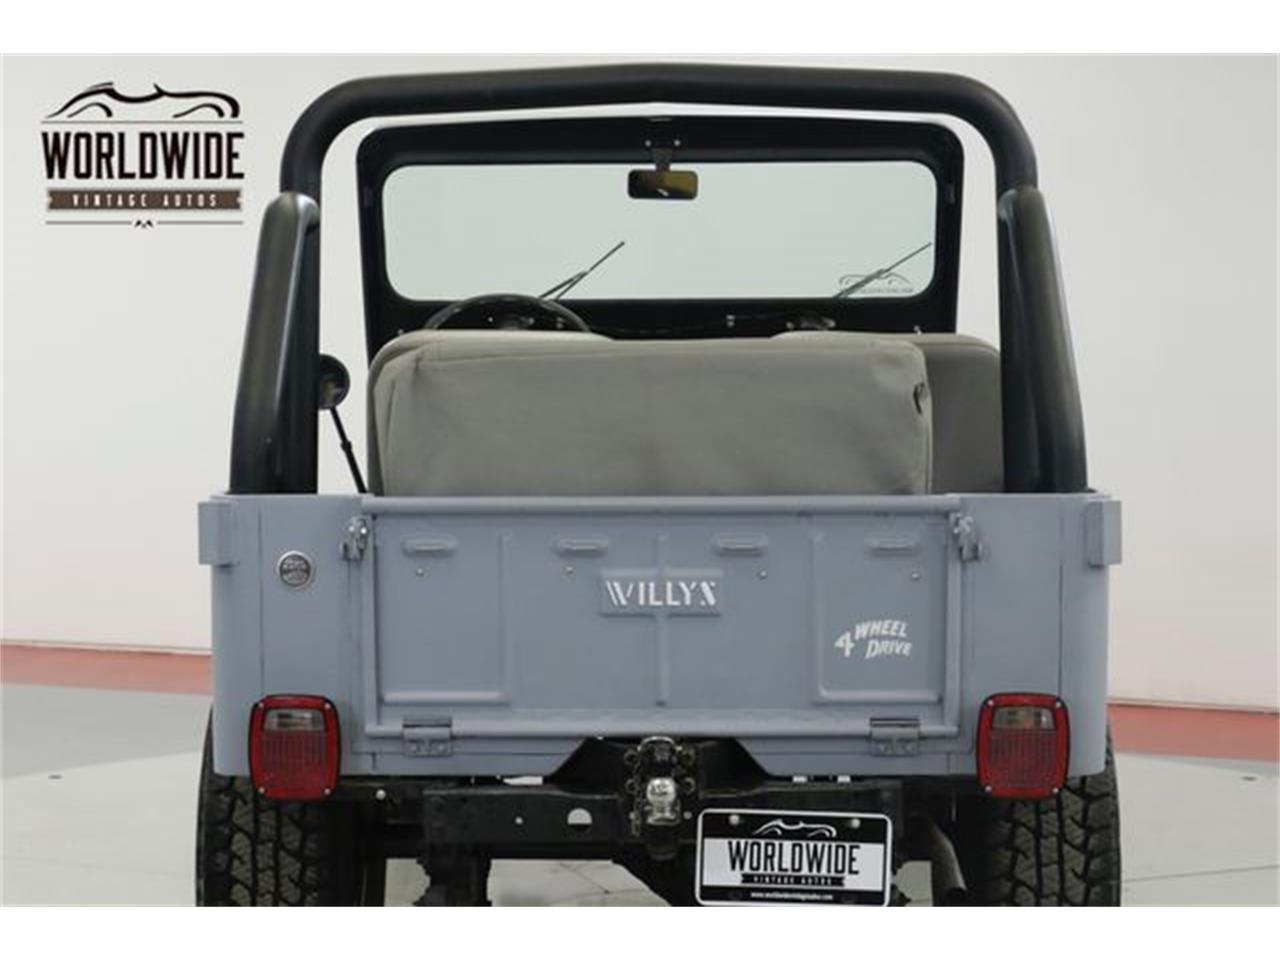 Large Picture of 1961 Willys located in Denver  Colorado - $13,900.00 - PUFZ